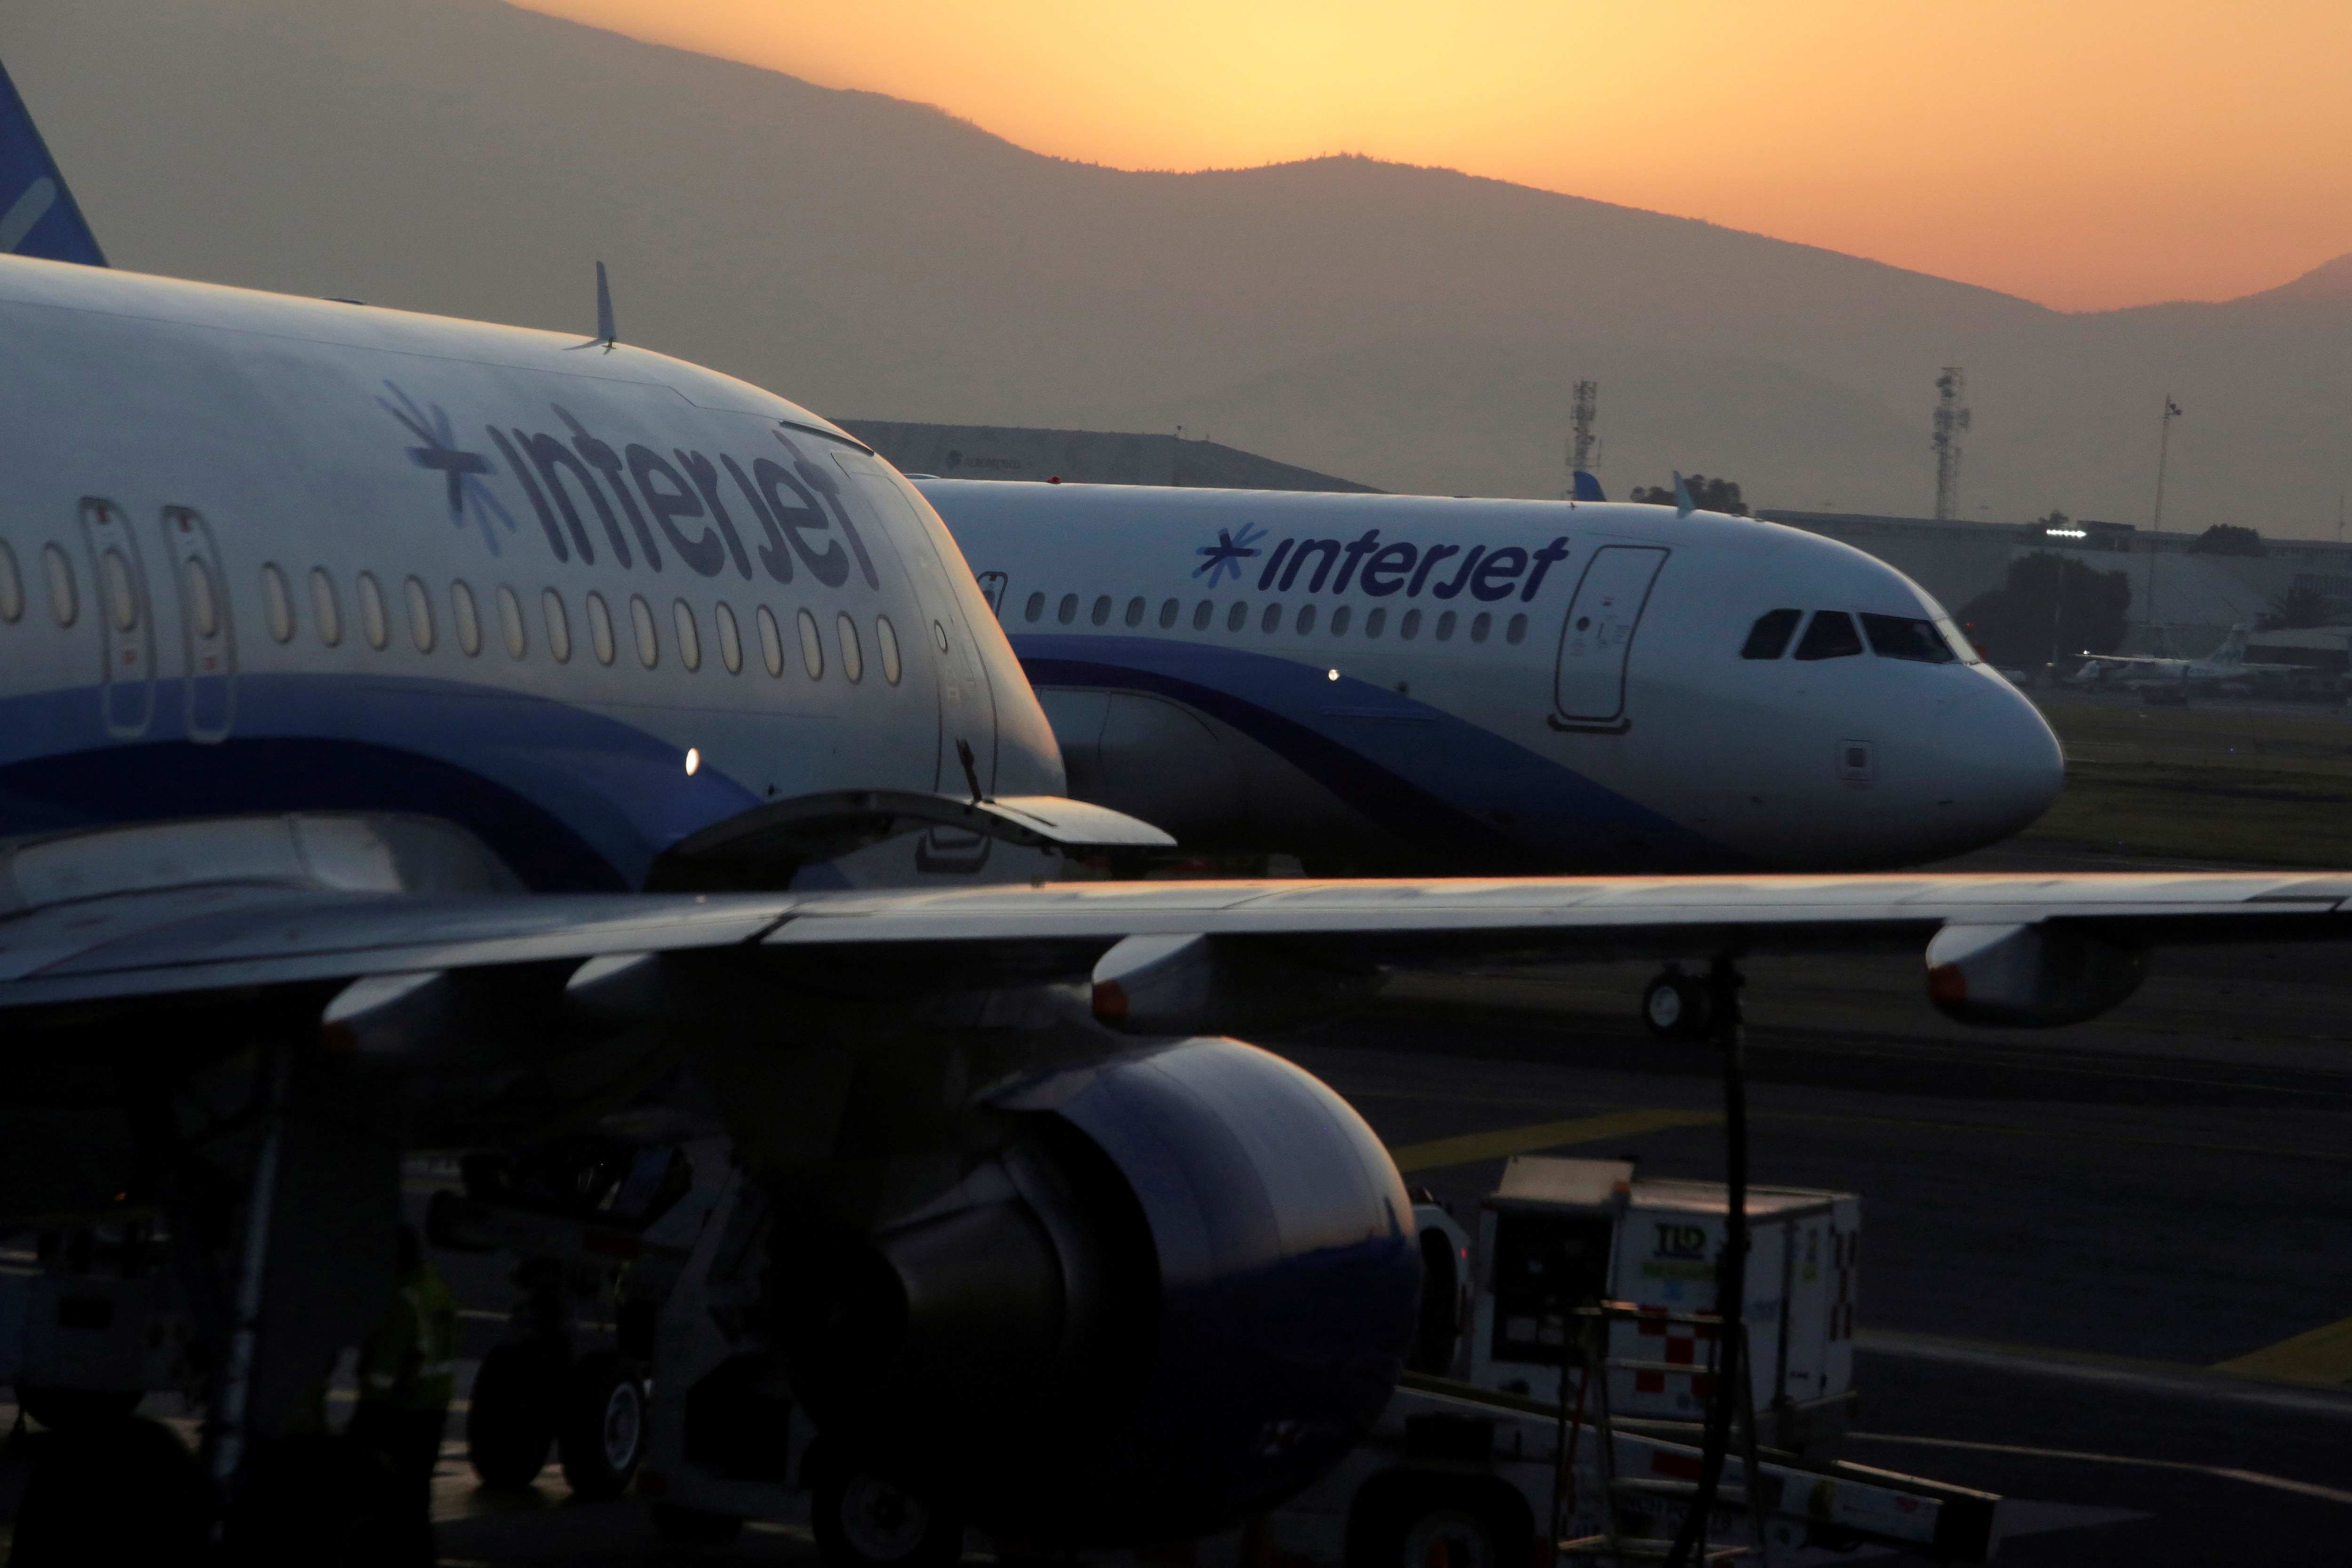 FILE PHOTO: Interjet Airbus A320 aircraft are seen on the tarmac at Benito Juarez international airport in Mexico City, Mexico, February 15, 2019. REUTERS/Daniel Becerril/File Photo